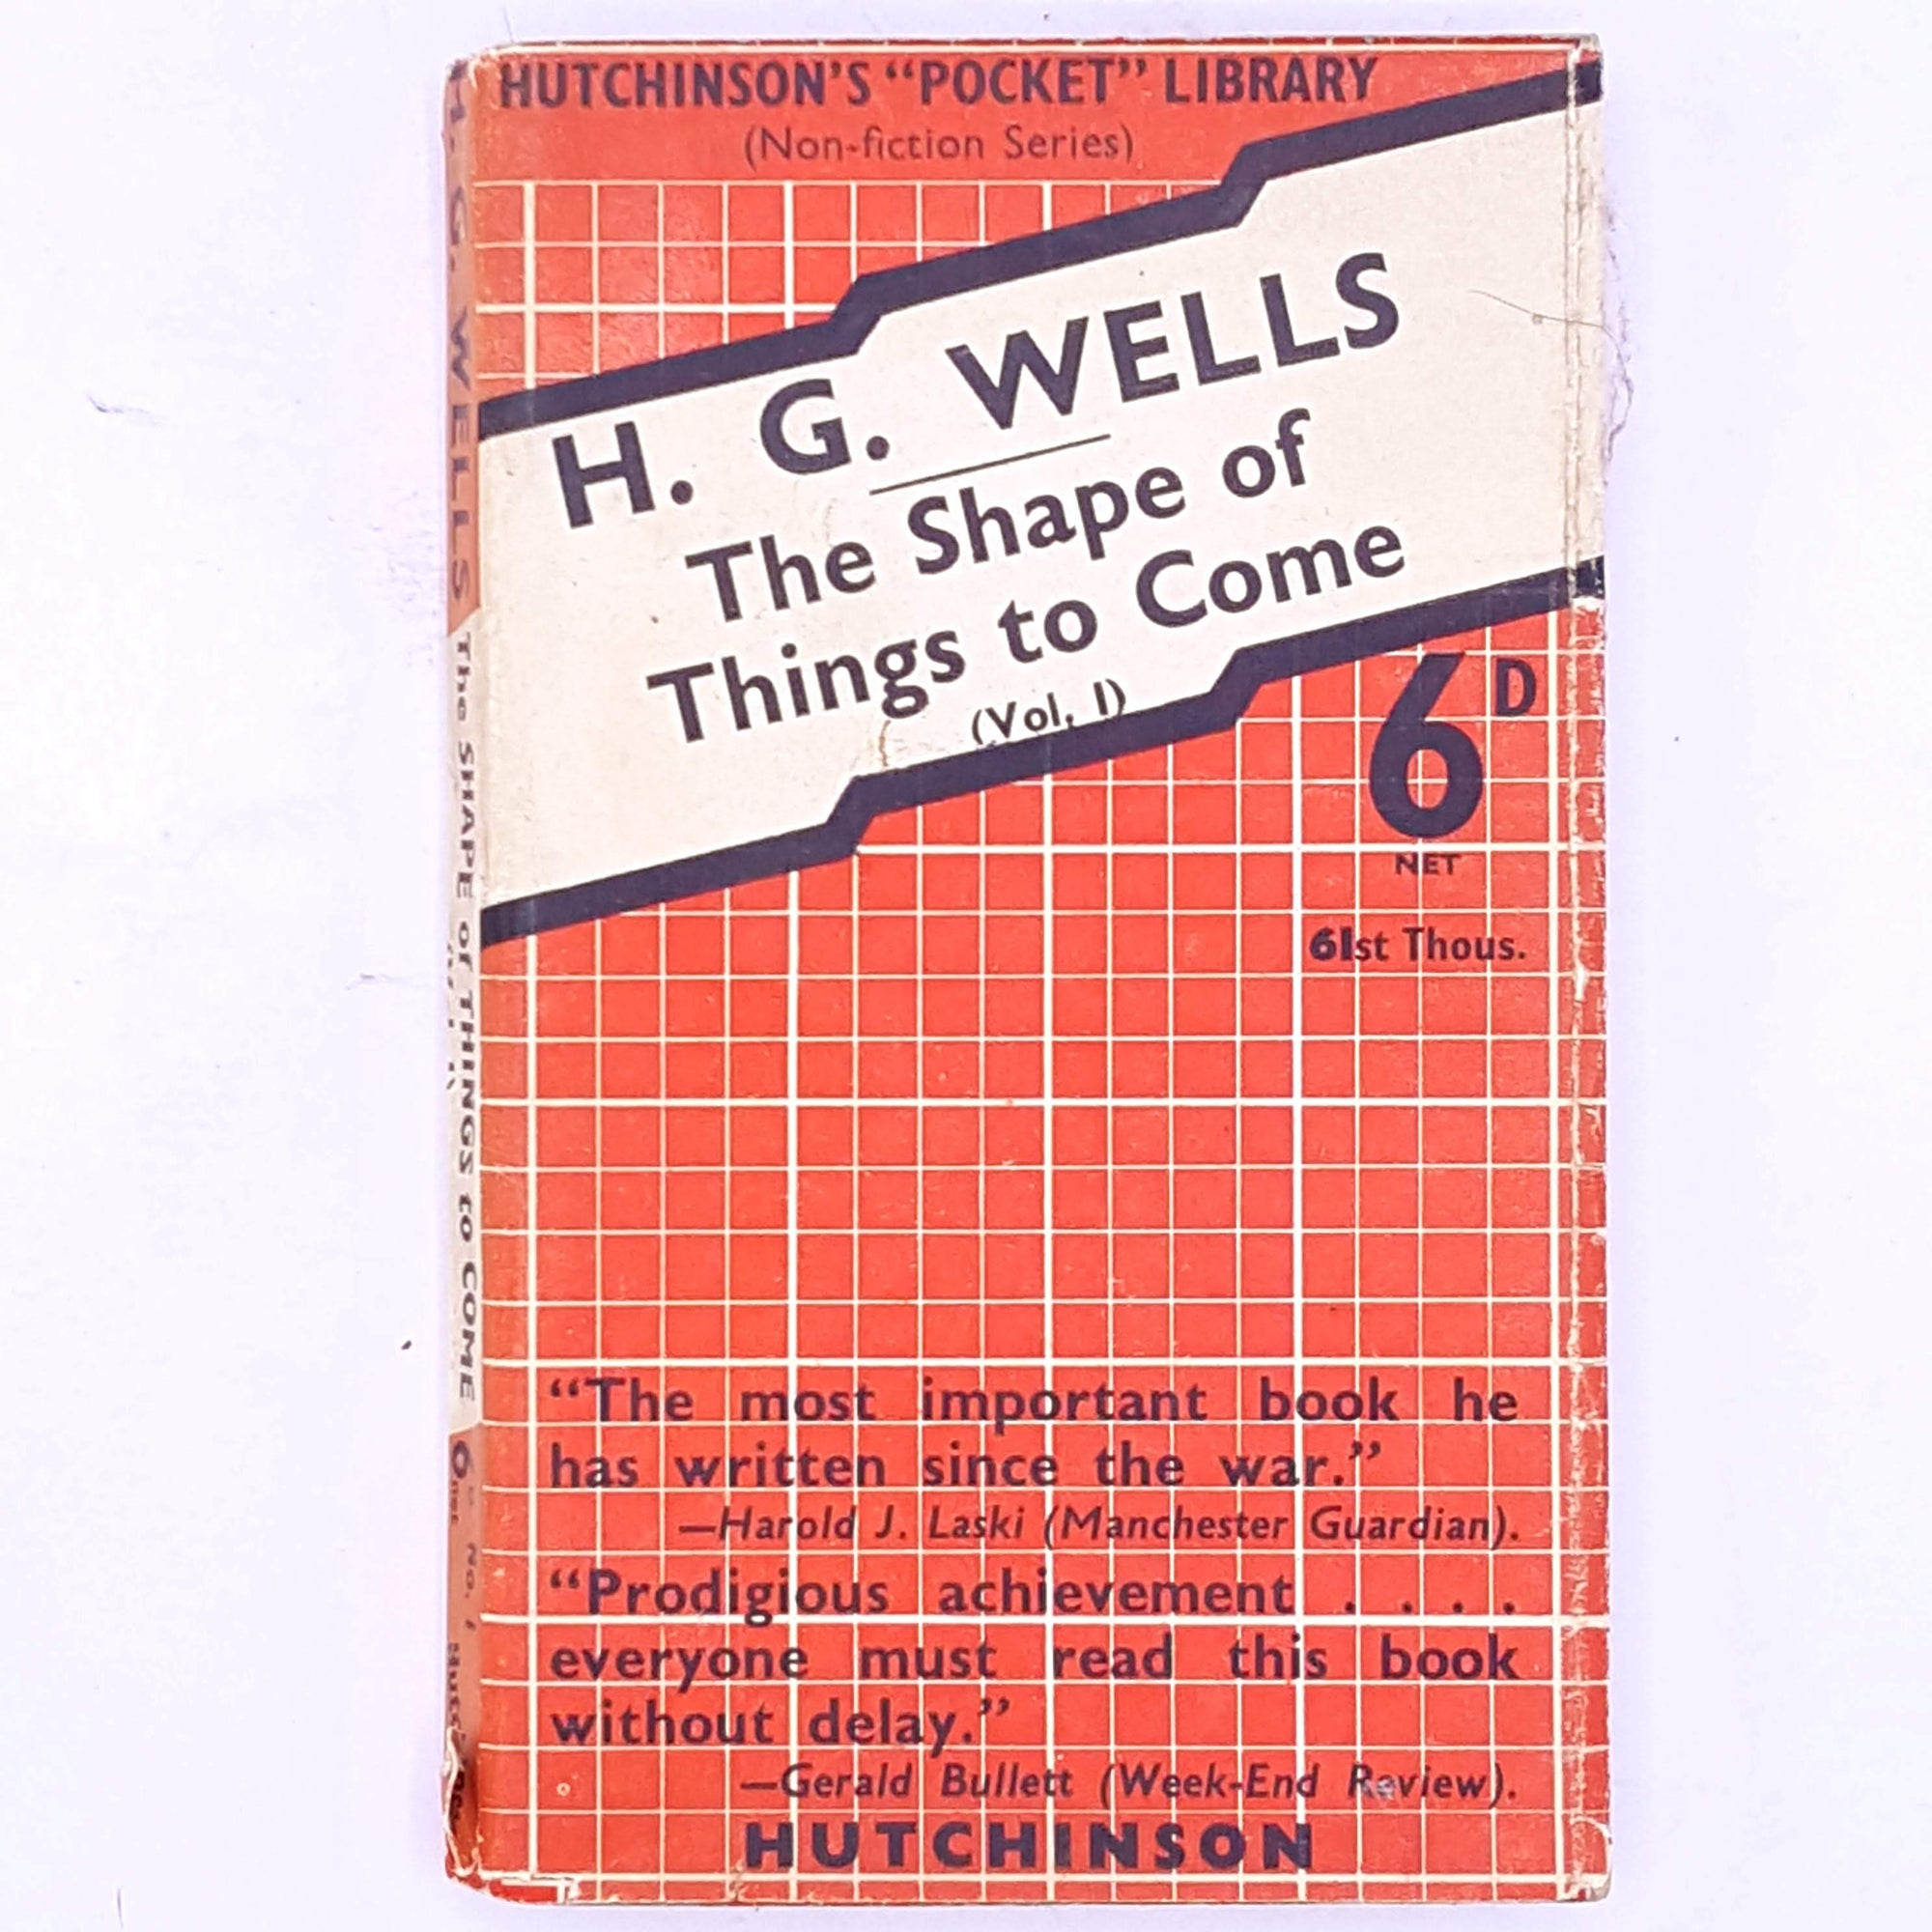 vintage-classic-The-Shape-of-Things-to-Come-antique-books-H.G.-Wells- decorative-short-stories- country-house-library-patterned-thrift-old-short-story-science-fiction-